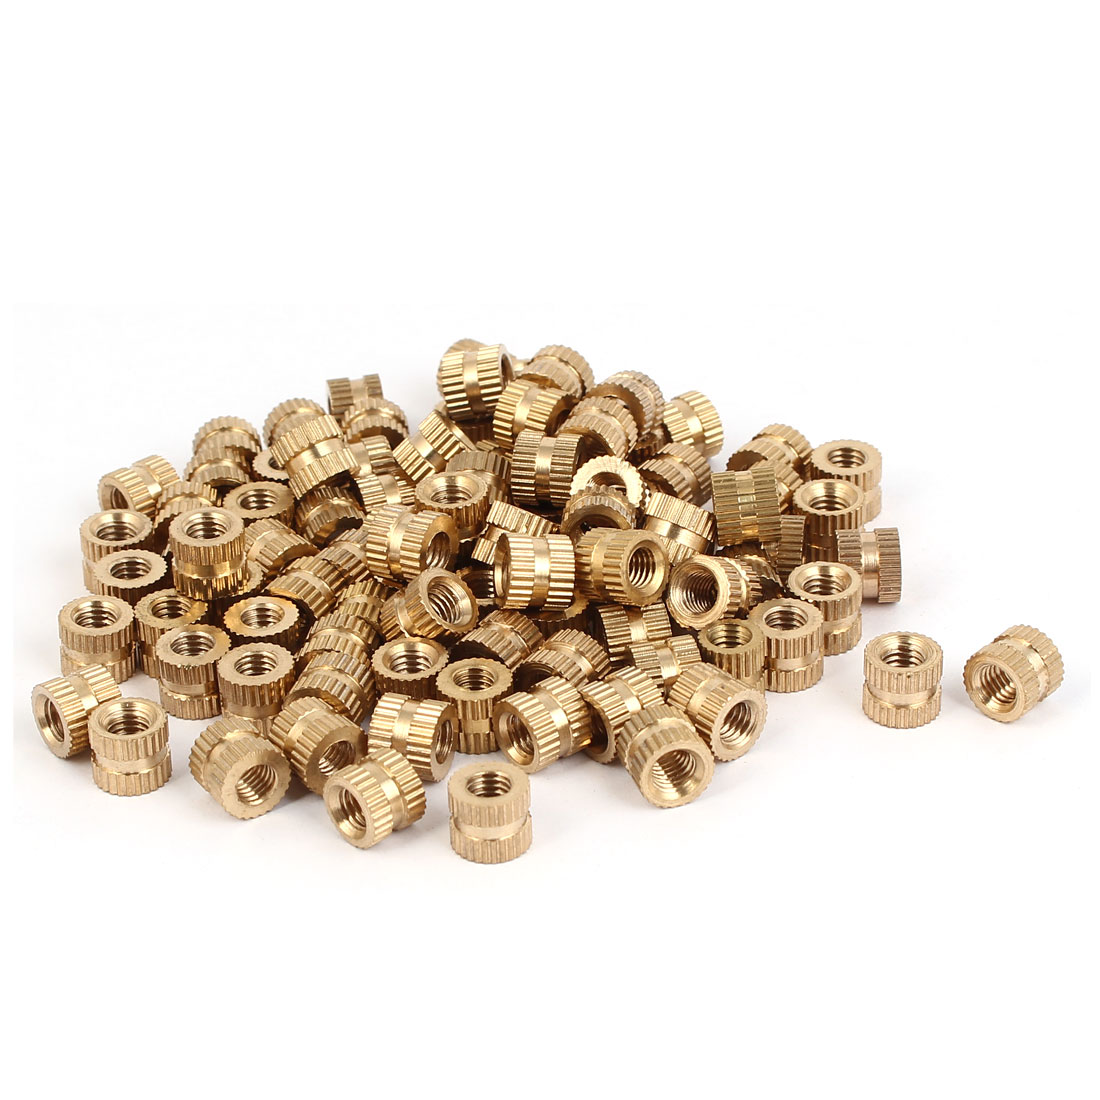 M5 x 7mm Brass Cylinder Knurled Threaded Round Insert Embedded Nuts 100PCS